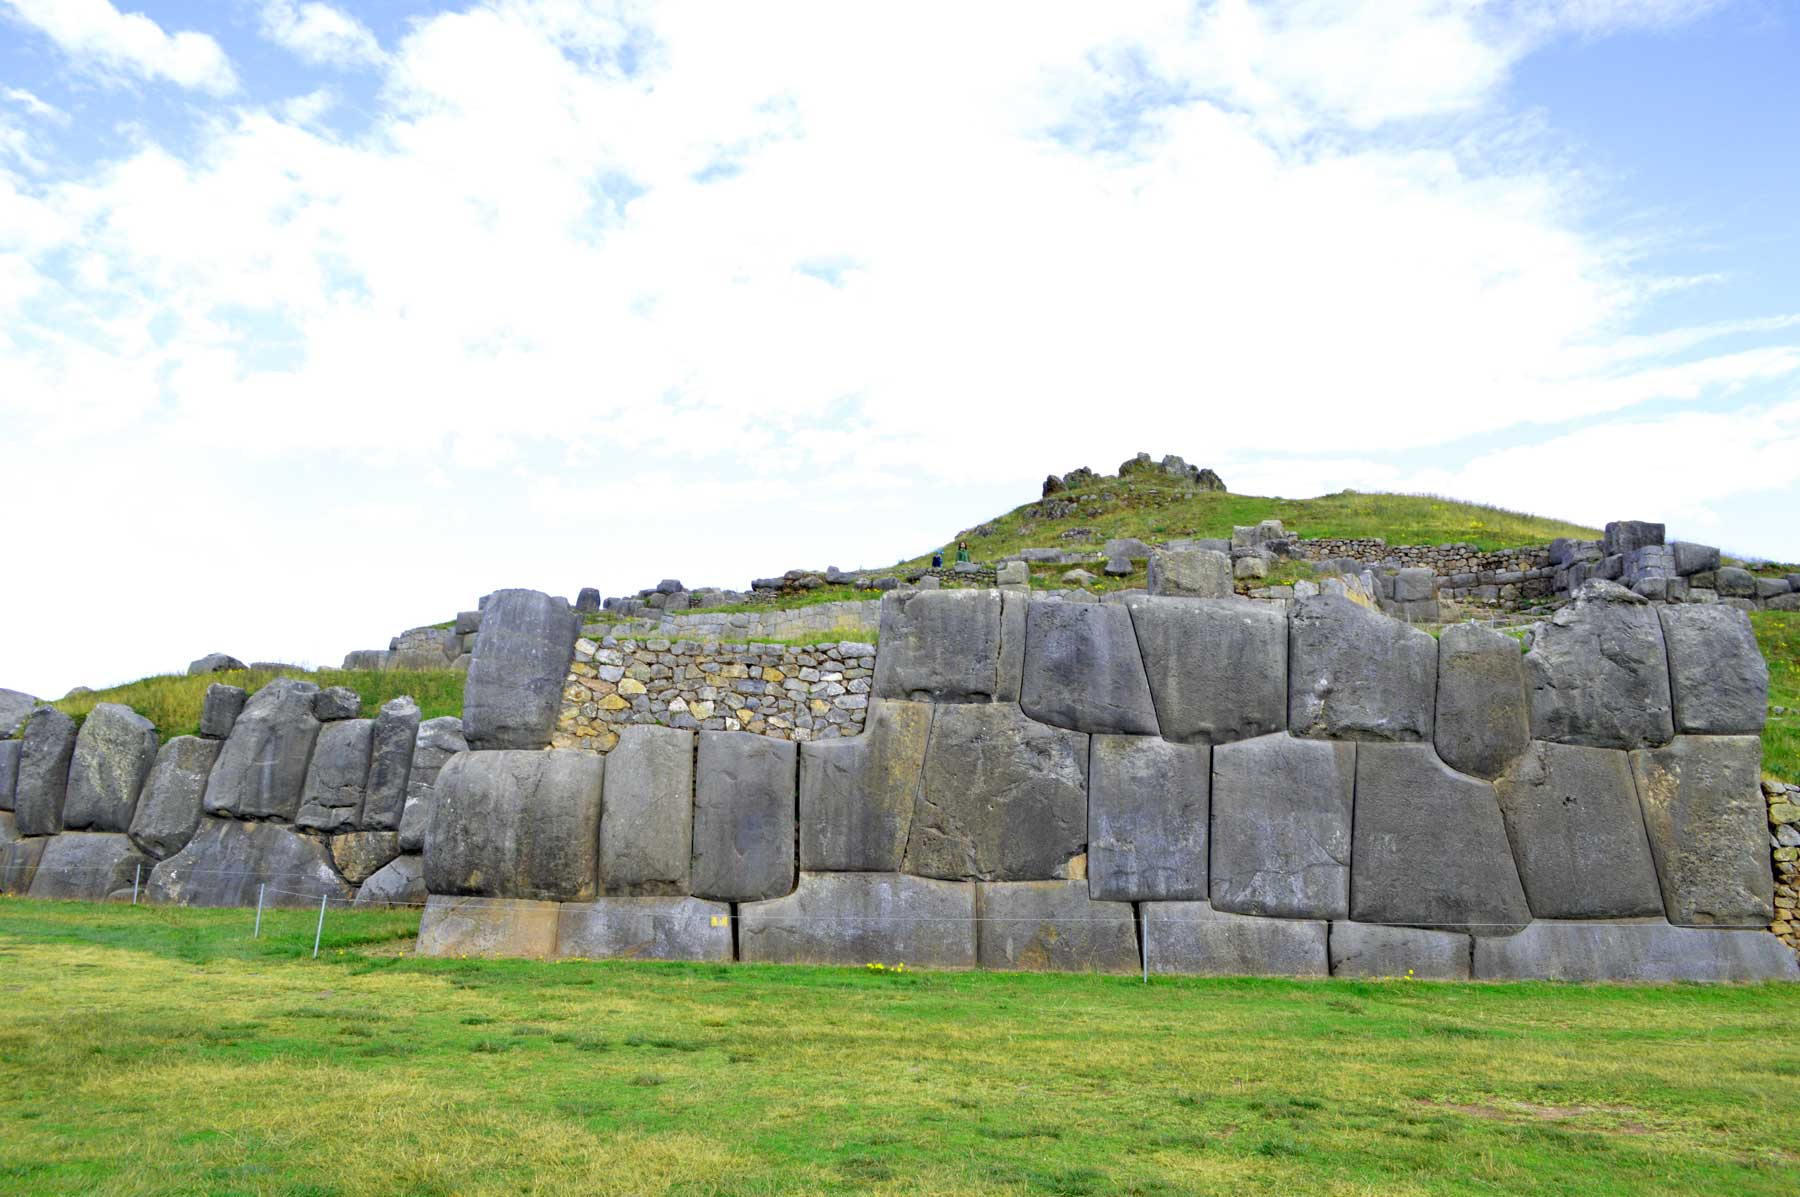 Impressive constructions in Sacsayhuaman